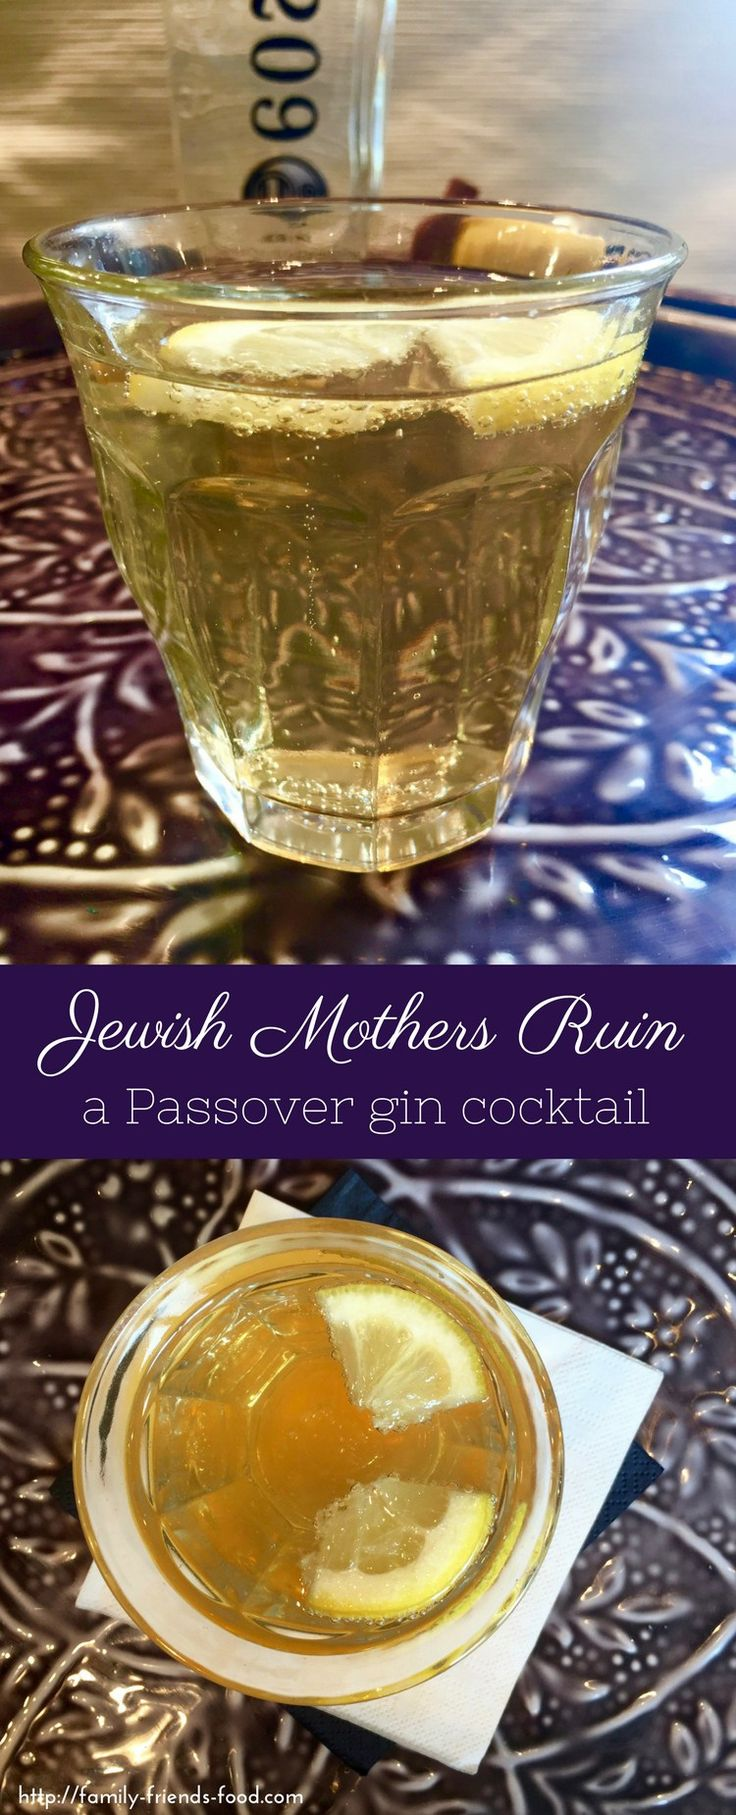 There really is a KOSHER FOR PASSOVER GIN! Time to mix yourself a well-earned cocktail. Jewish Mothers Ruin is the perfect tipple to relax with this Pesach. #passover #gin #cocktail #jewishfood